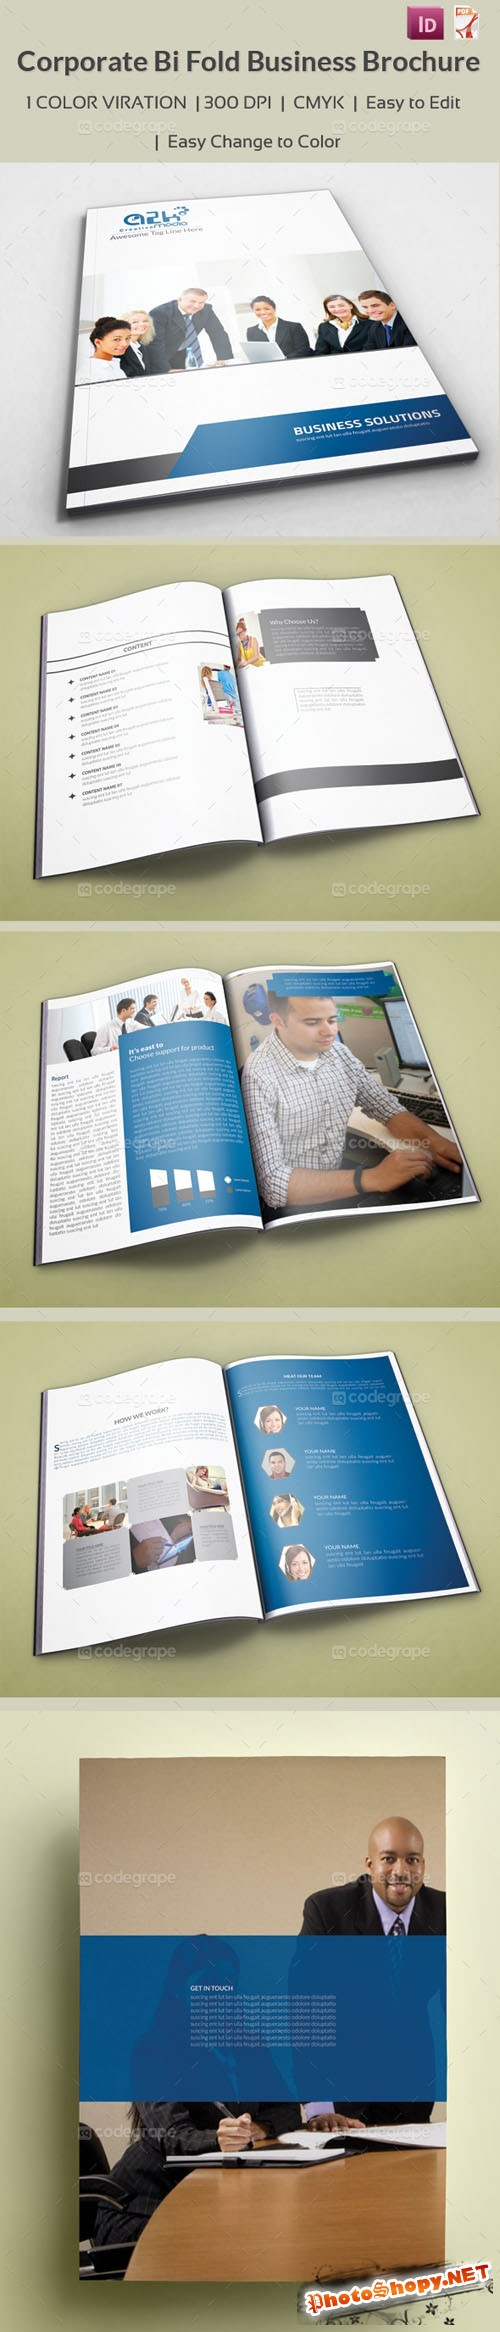 CodeGrape - Corporate Bi Fold Business Brochure 5271